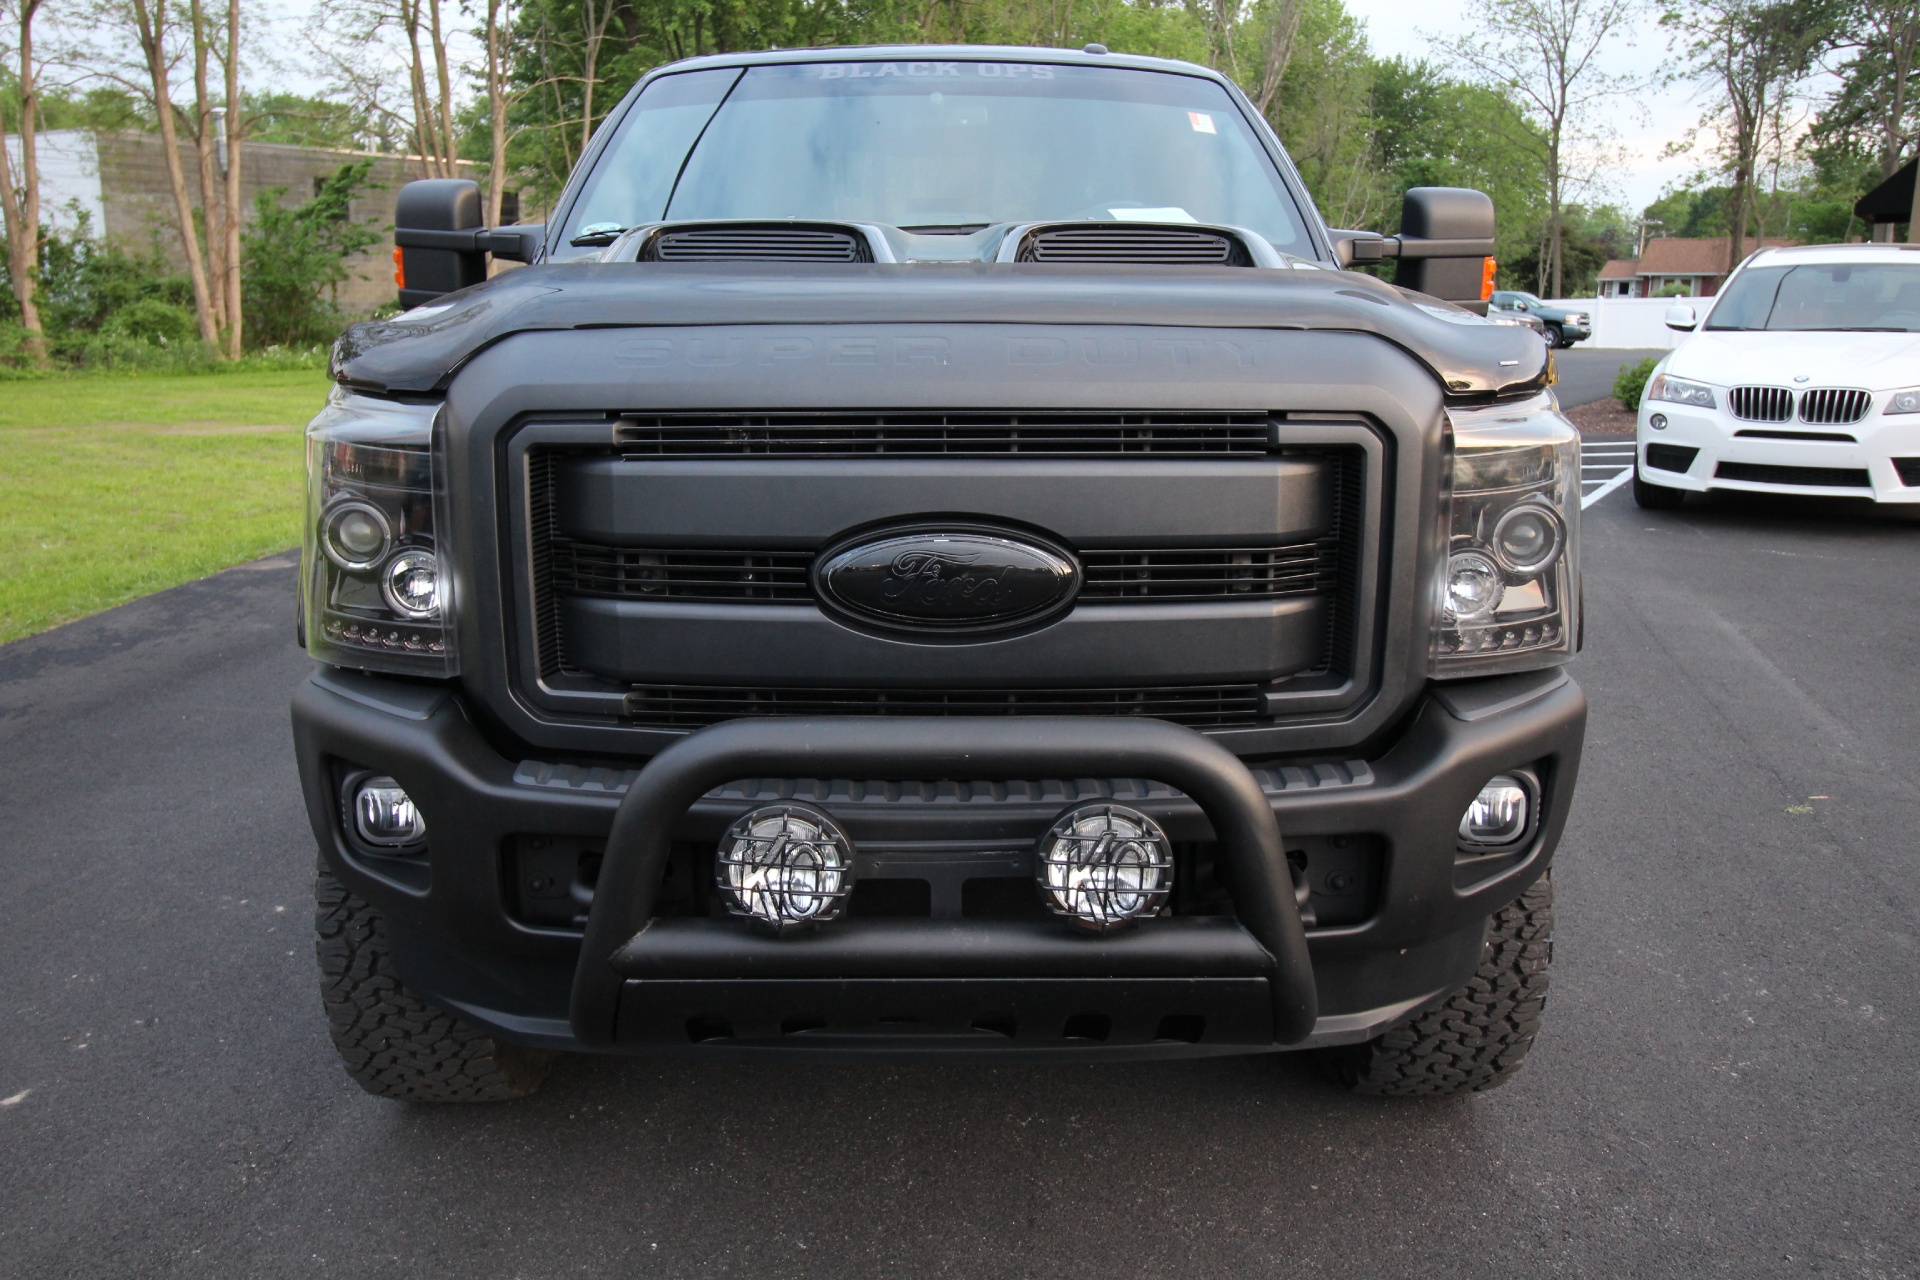 Ford Tuscany Price >> 2013 Ford F-250 Super Duty Lariat DIESEL SPECIAL OPS BY TUSCANY,MSRP WAS78,489$ Stock # 16112 ...